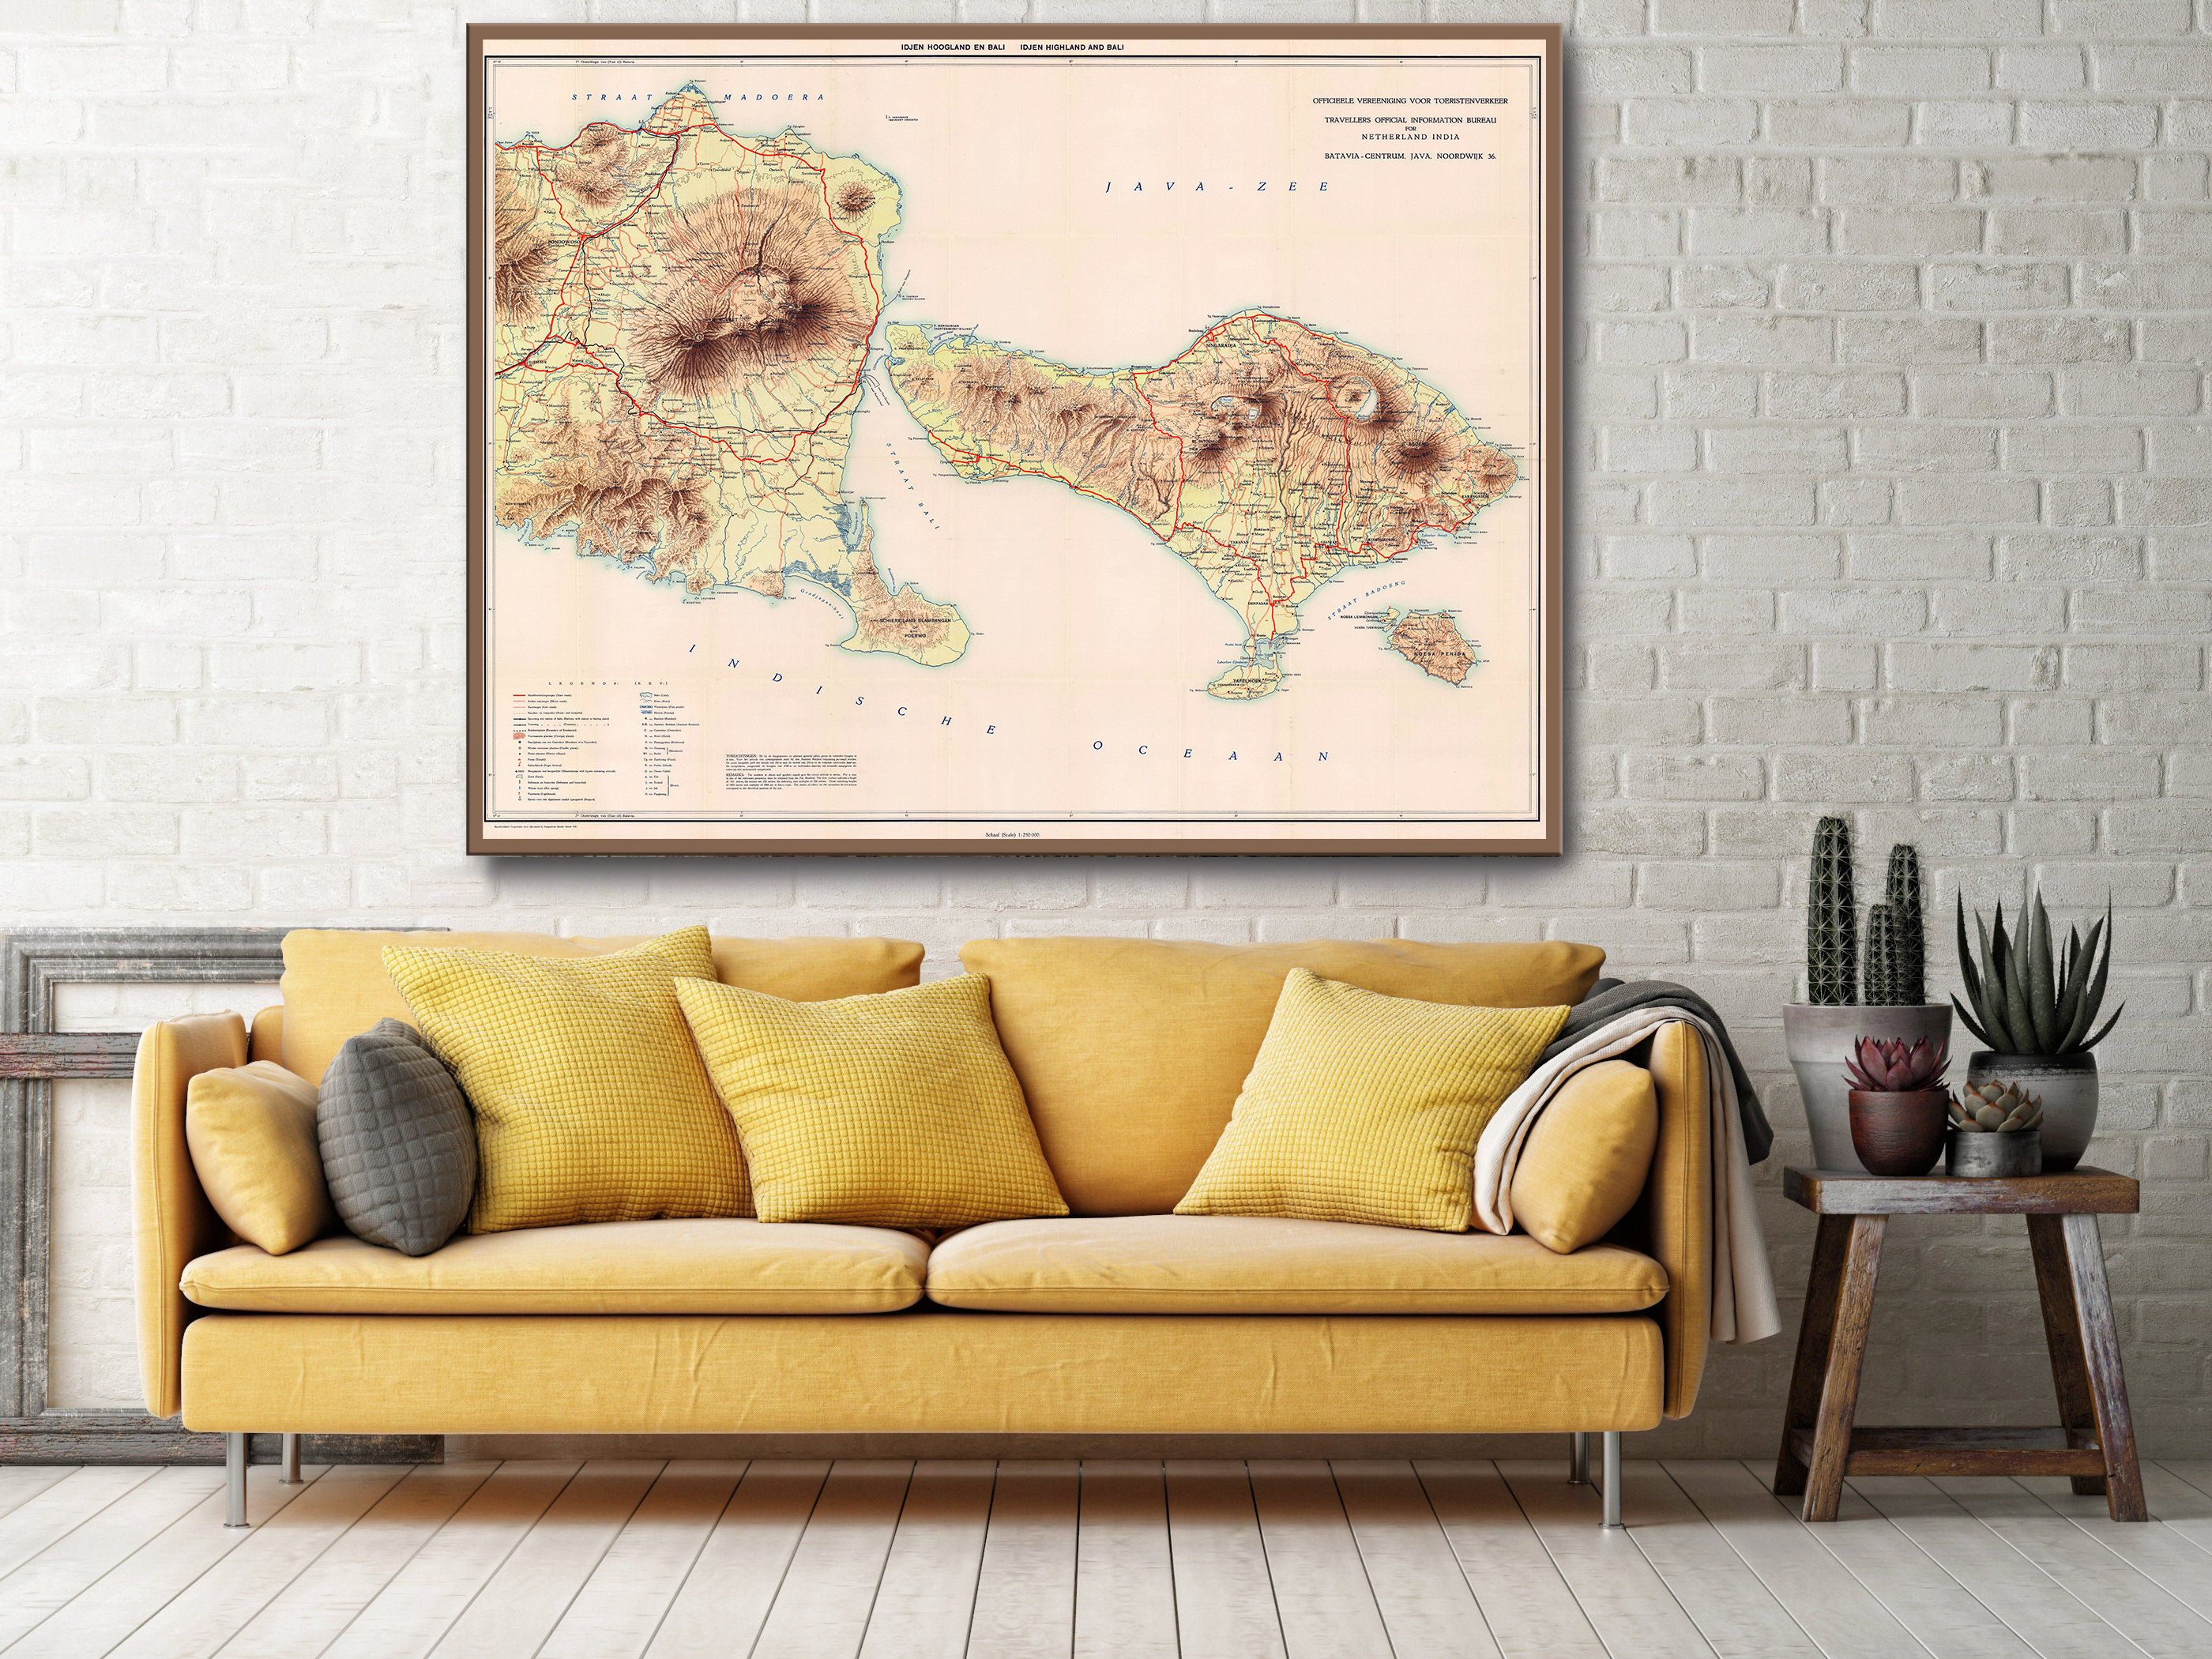 Vintage Bali Indonesia 1932 Map Of Eastern Java And Bali In